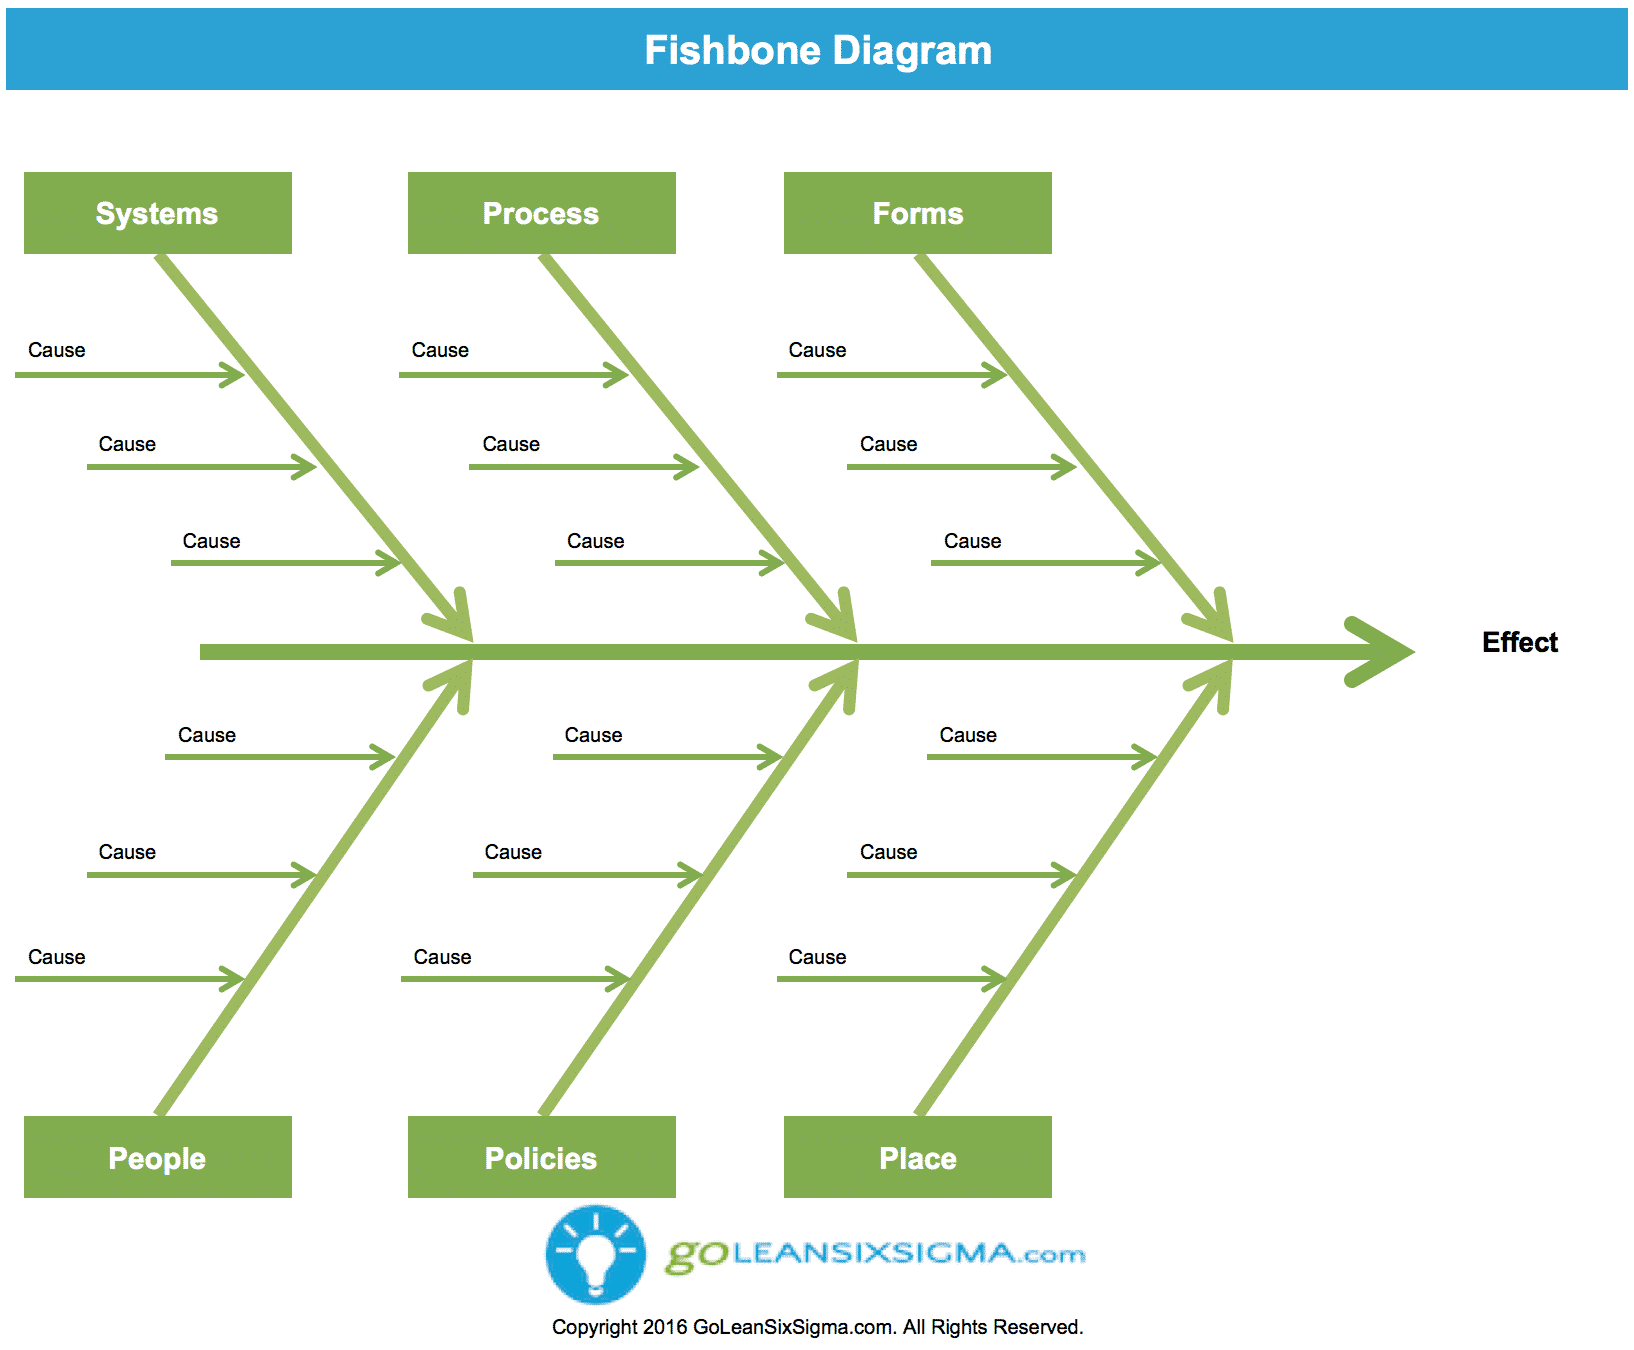 Fishbone Diagram or Cause & Effect Diagram - Template & Example